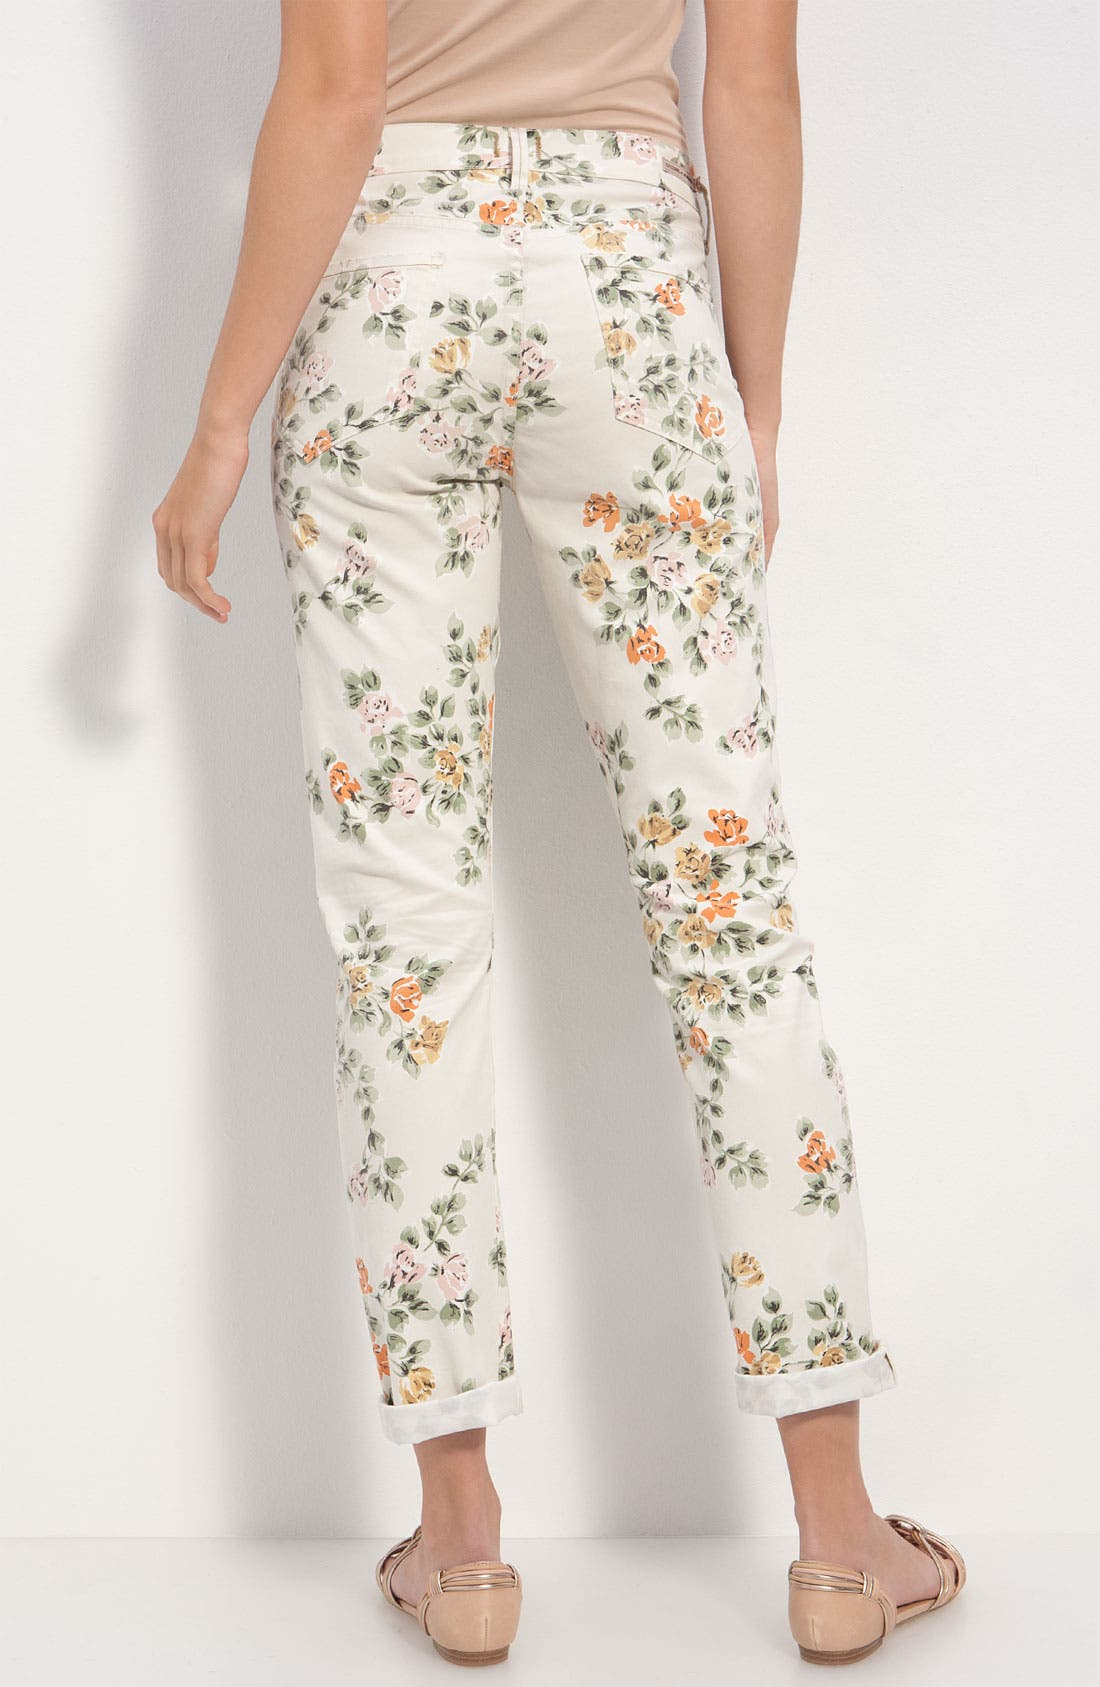 Main Image - Citizens of Humanity 'Mandy' High Waist Slim Leg Floral Print Jeans (Natural Petite Rose)